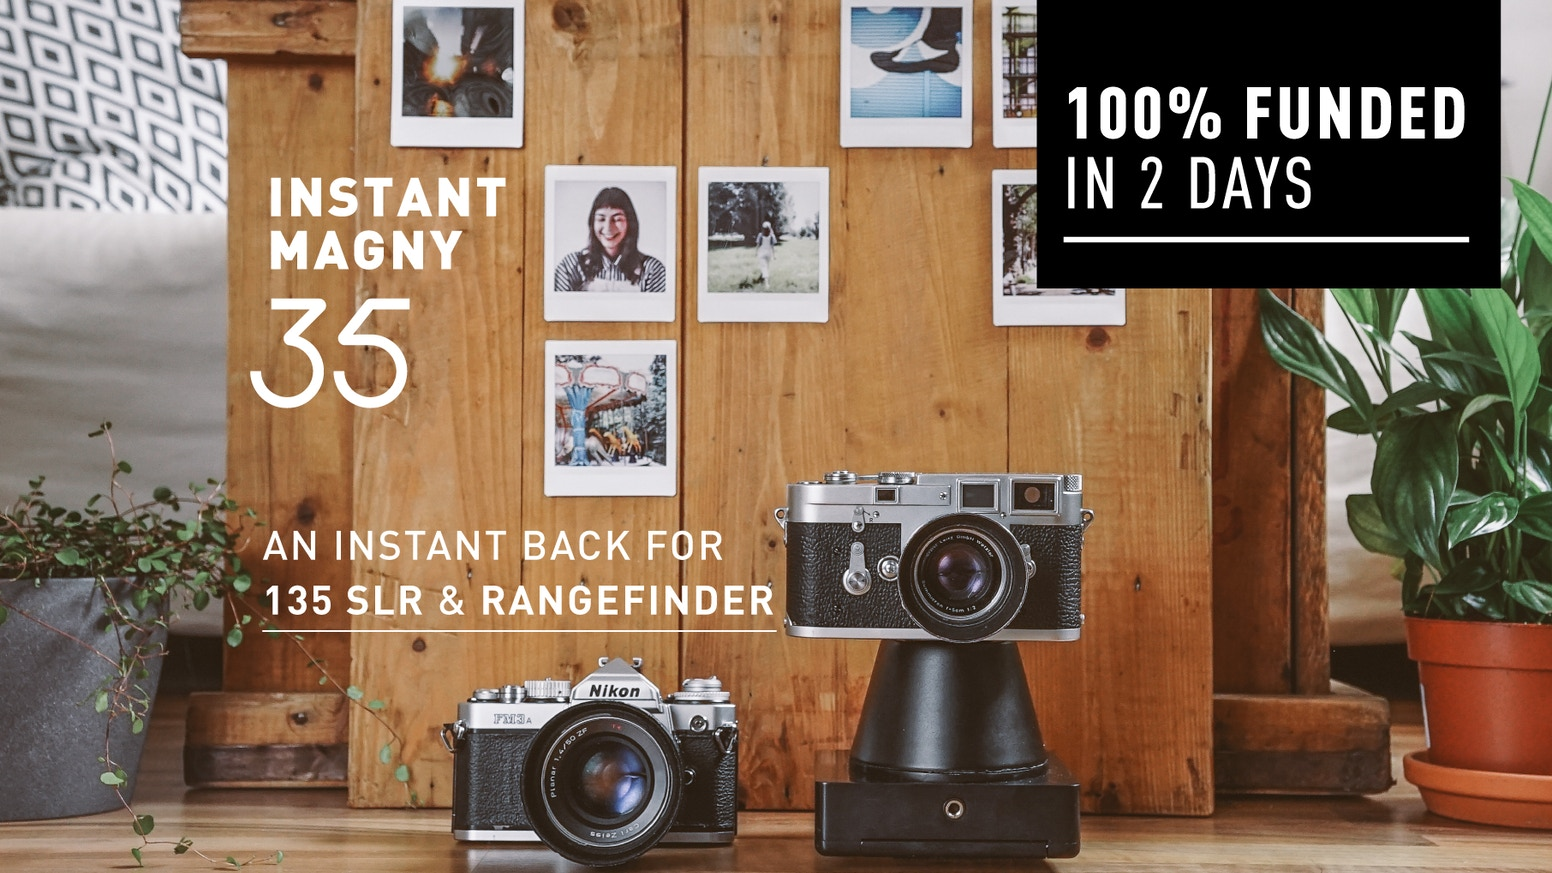 Enables you to use a 135 SLR and Rangefinder camera to capture instant photographs without any modifications!